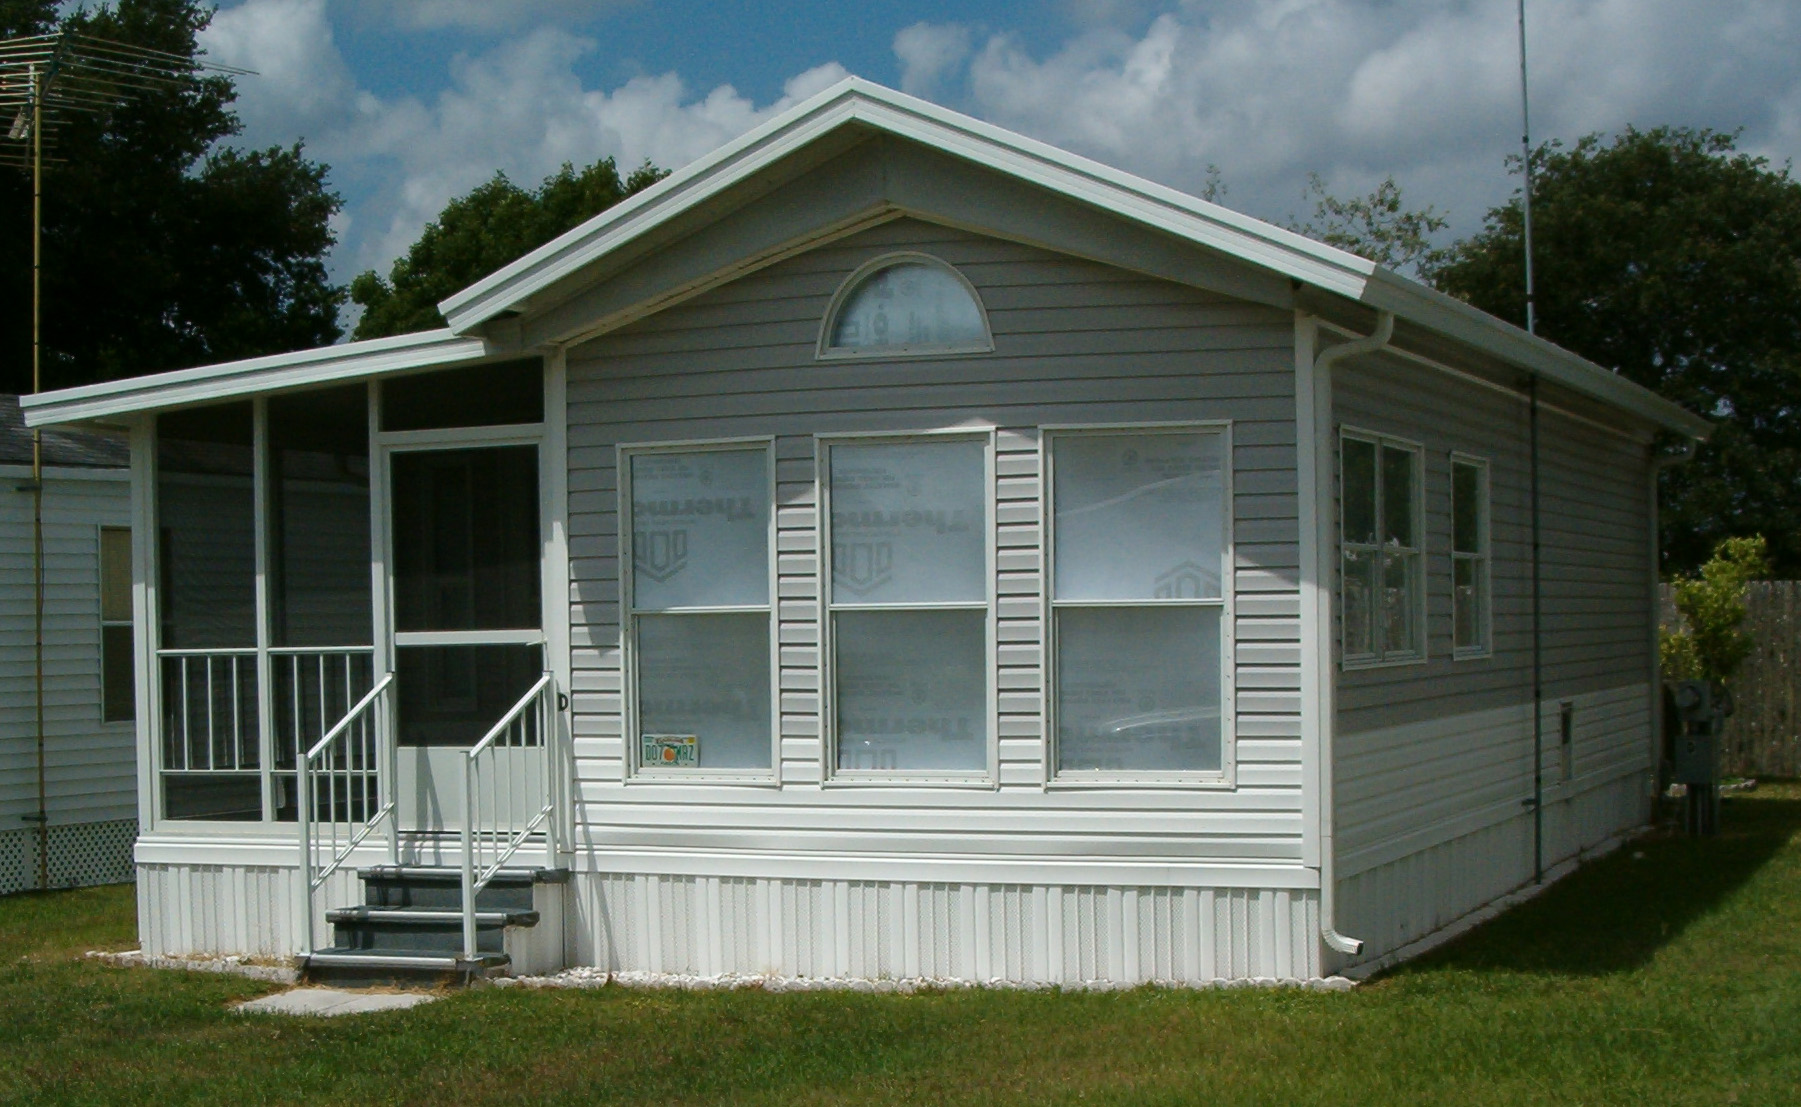 Mobile Homes For Sale And Rent To Own Mobiles Ft Myers RV Lot